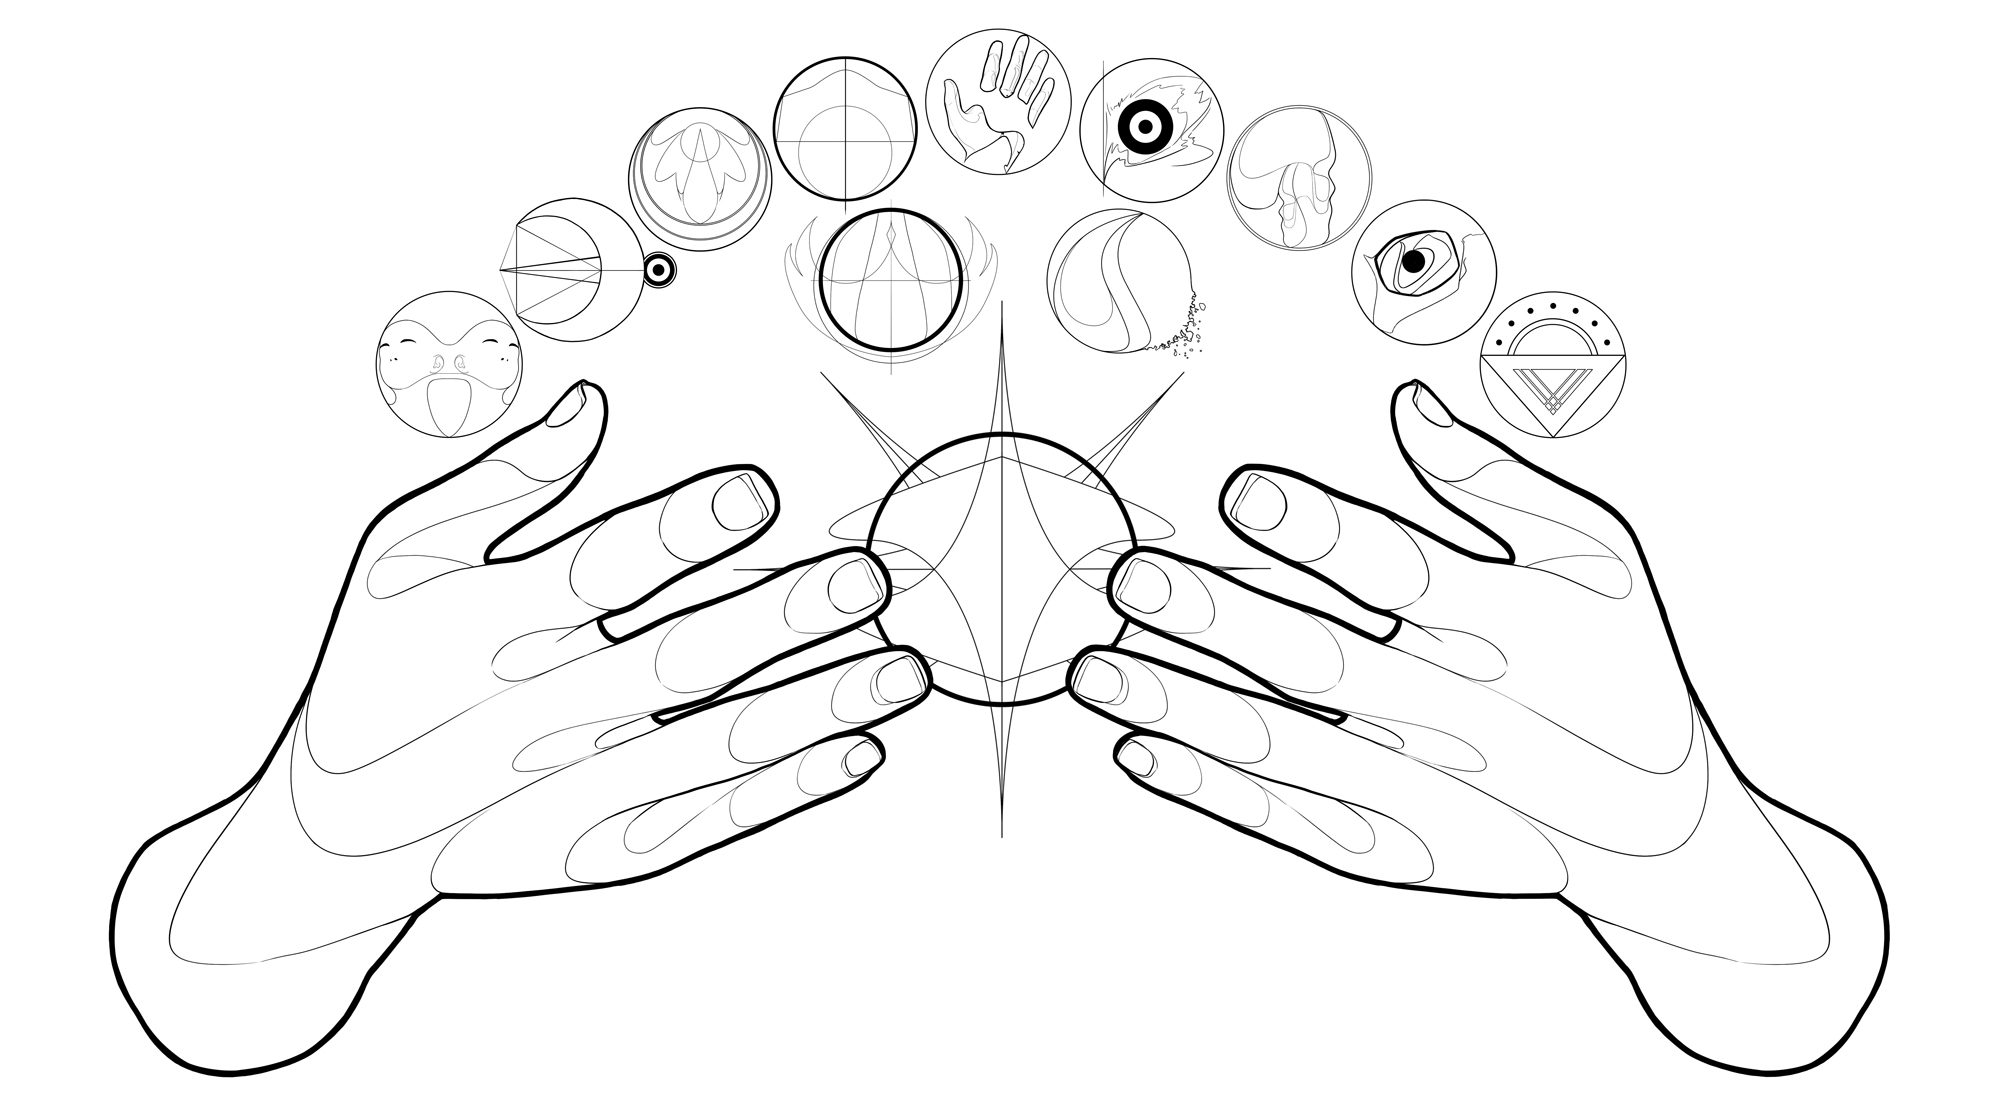 Hands of Fay Web.jpg